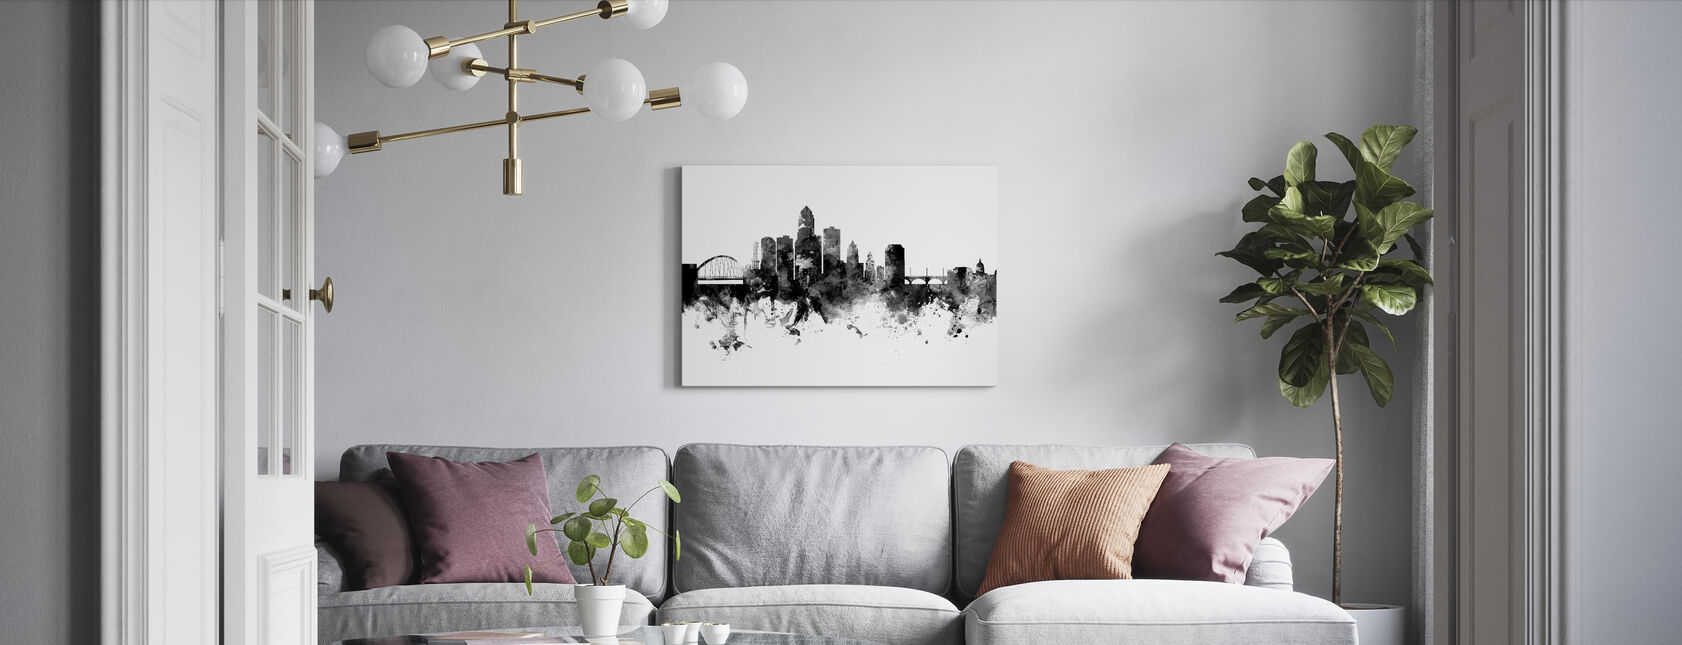 Des Moines Iowa Skyline, black and white - Canvas print - Living Room